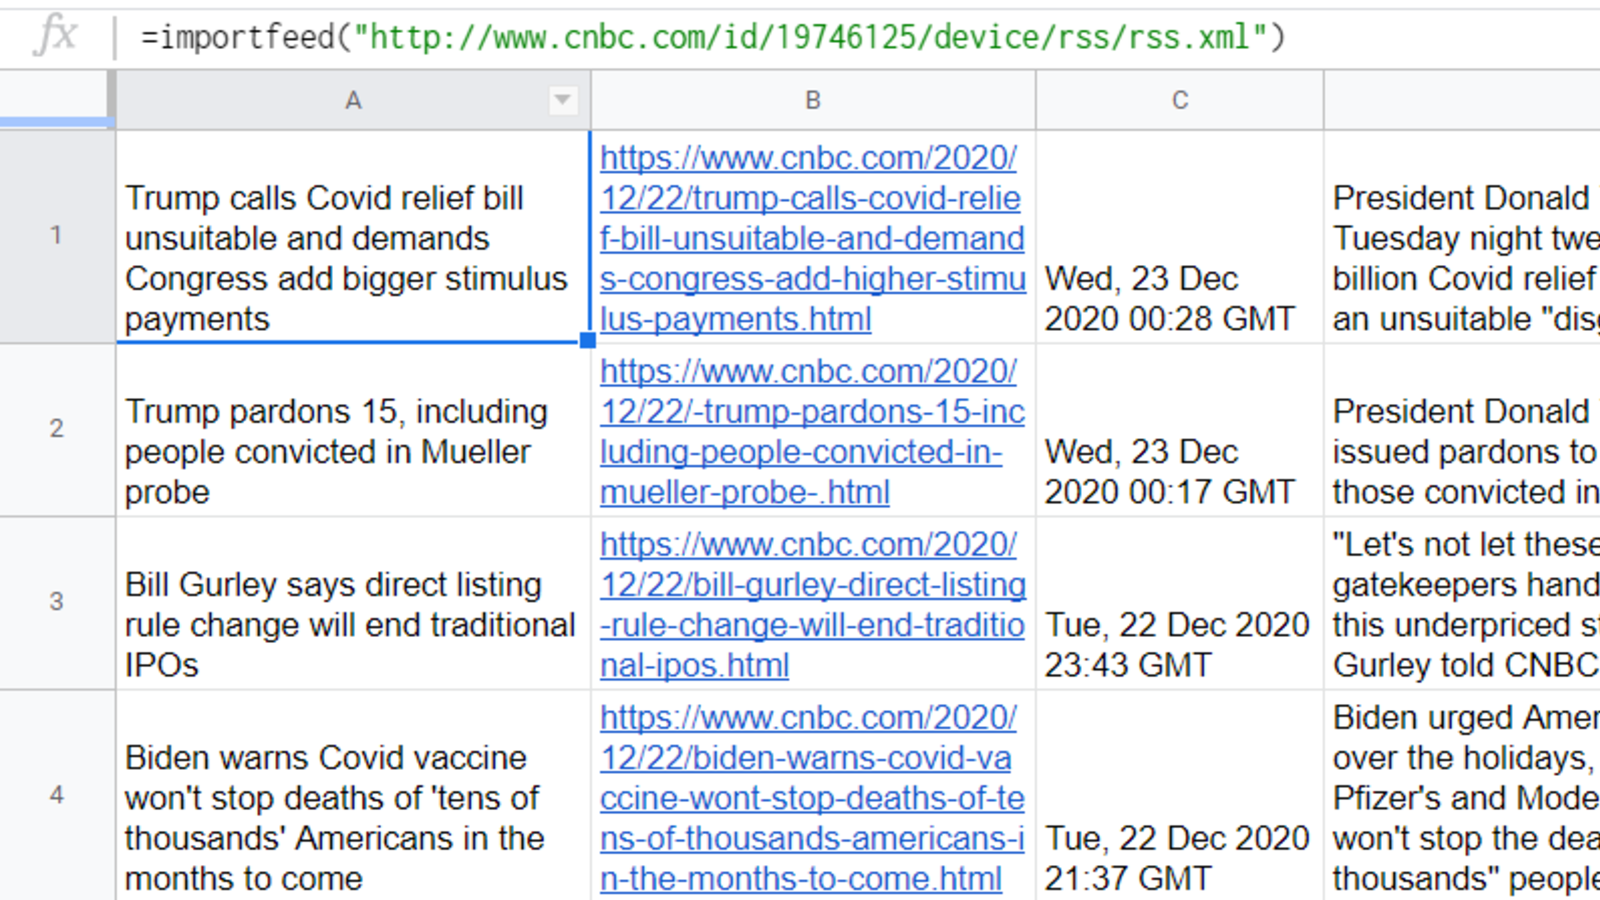 IMPORTFEED importing the latest news headlines with their summary and timestamp.